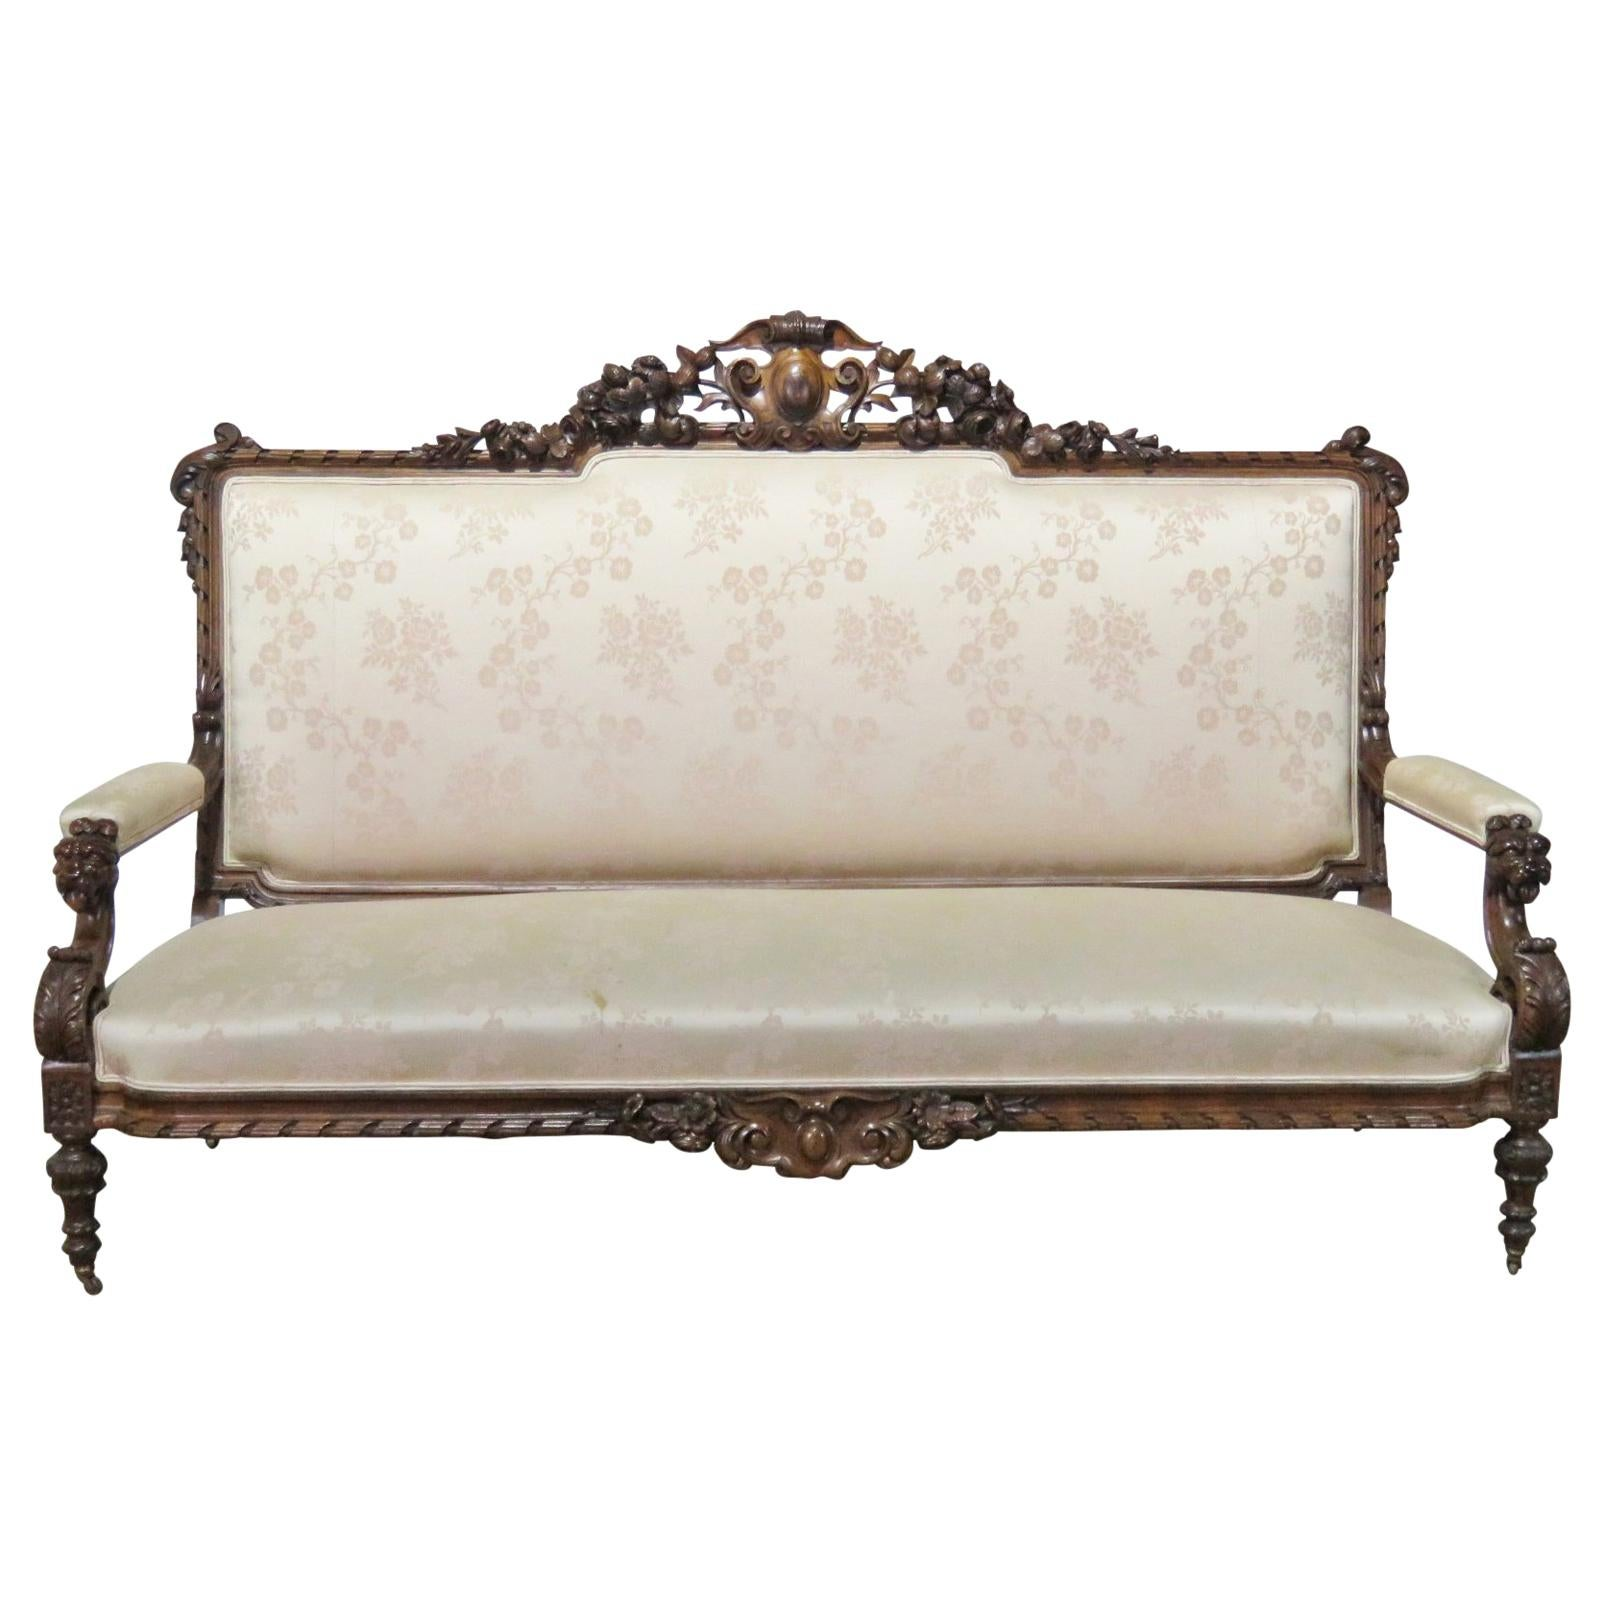 Victorian sofas 88 for sale at 1stdibs